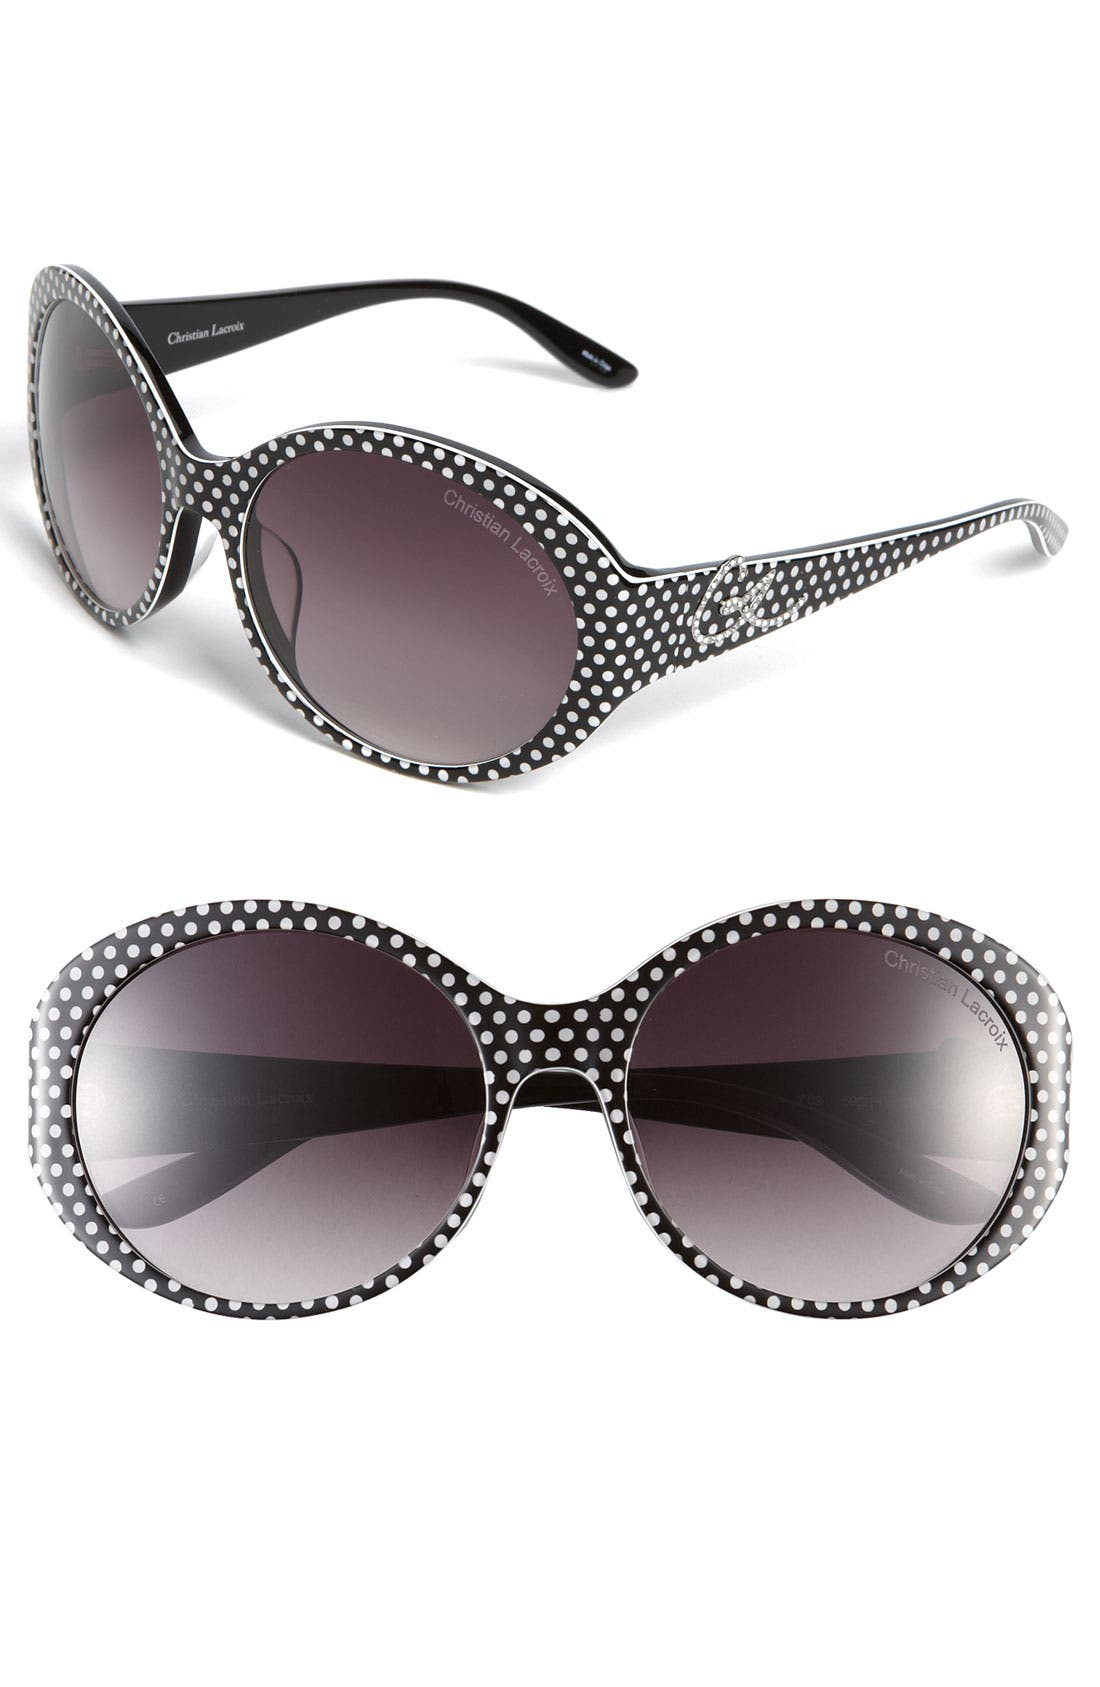 Main Image - Christian Lacroix Large Sunglasses